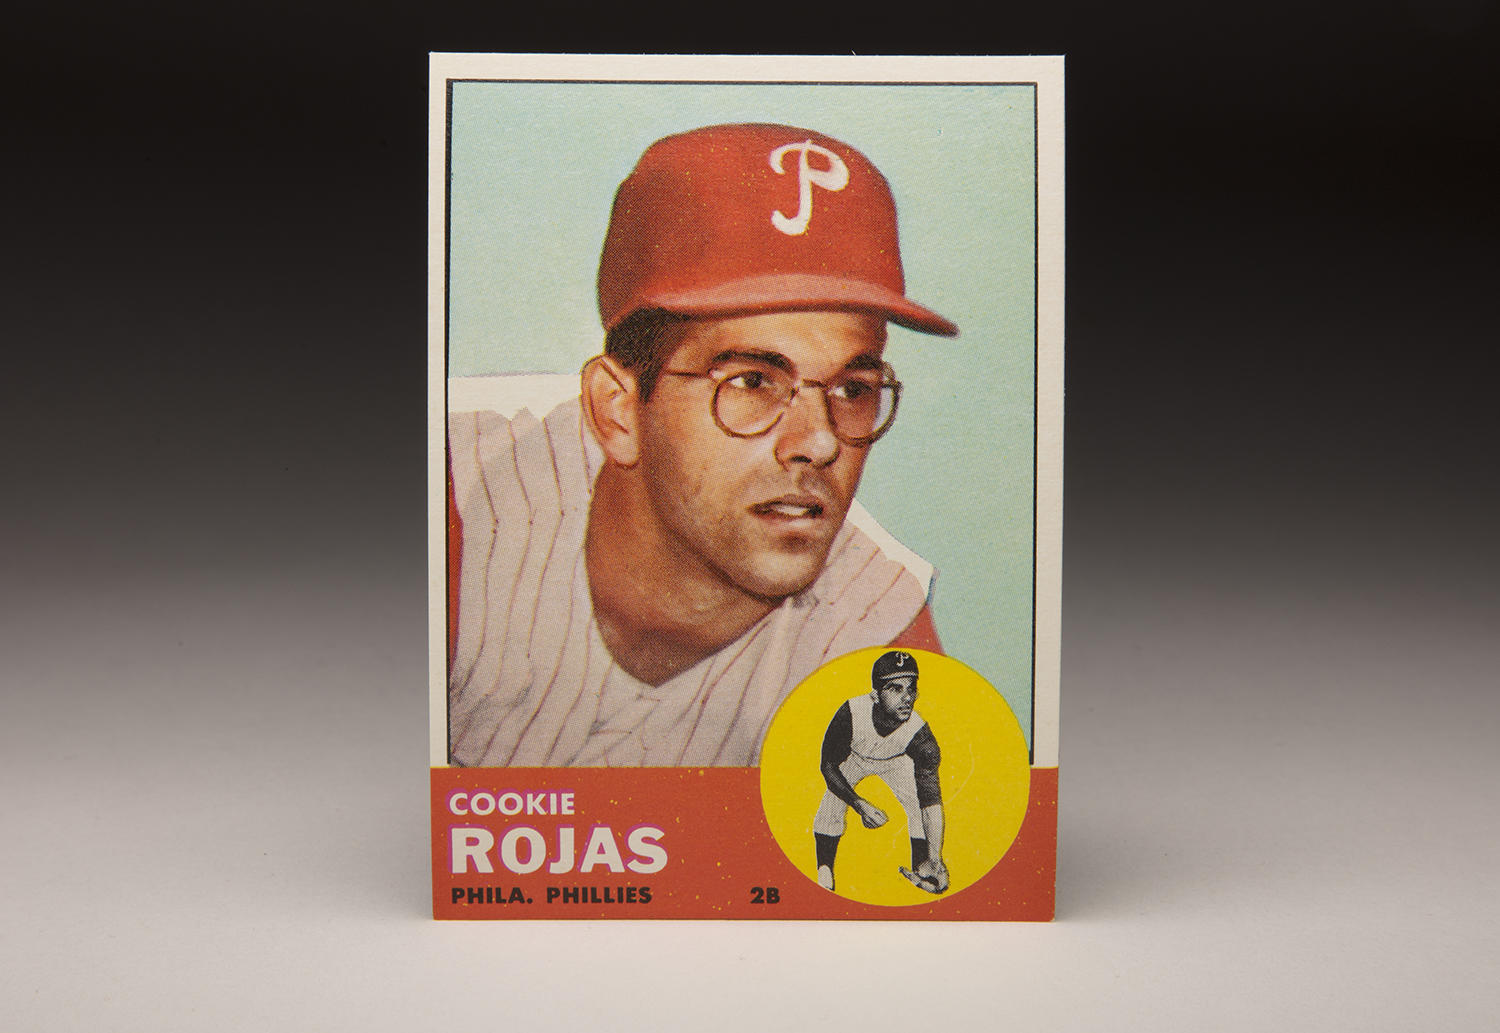 Cookie Rojas' 1963 rookie card, pictured above, provides an example of the vivid color photography that Topps produced throughout that set. (Milo Stewart Jr./National Baseball Hall of Fame and Museum)